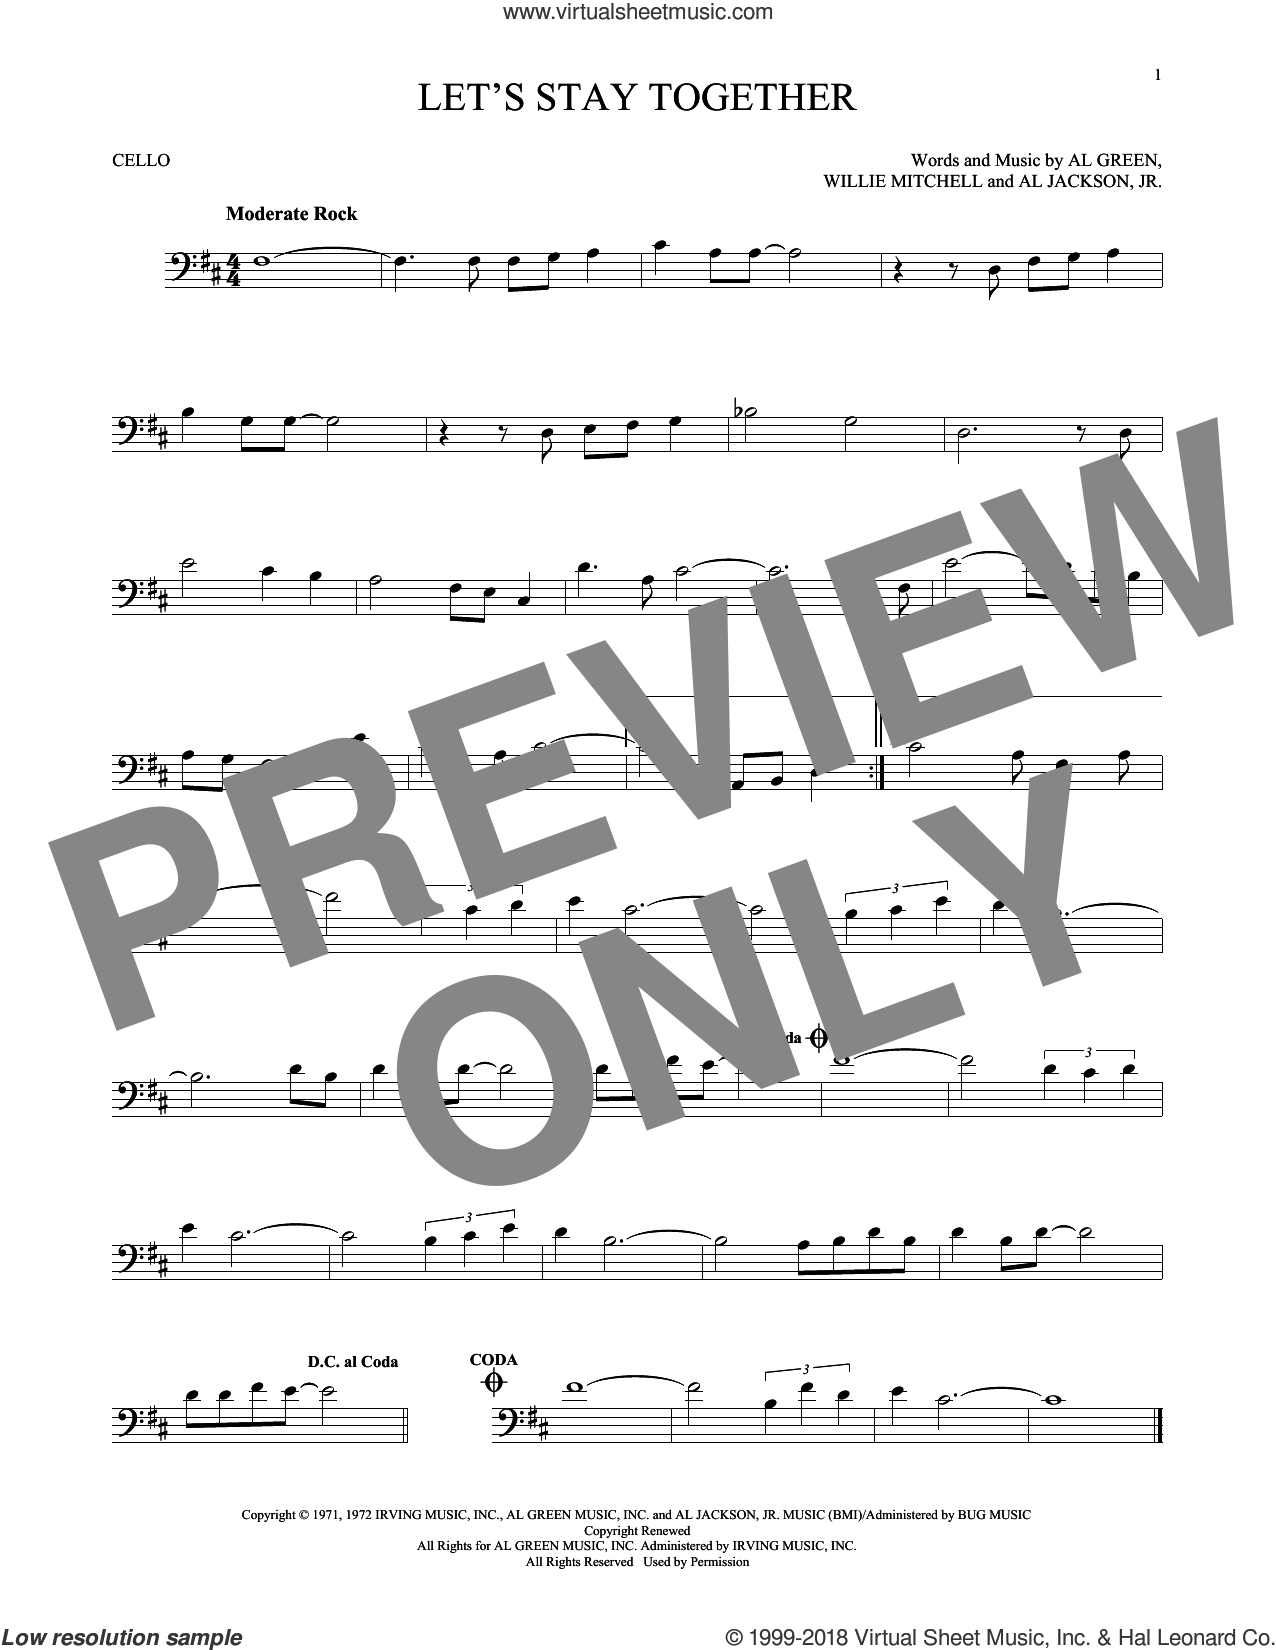 Let's Stay Together sheet music for cello solo by Al Green, Al Jackson, Jr. and Willie Mitchell, intermediate skill level